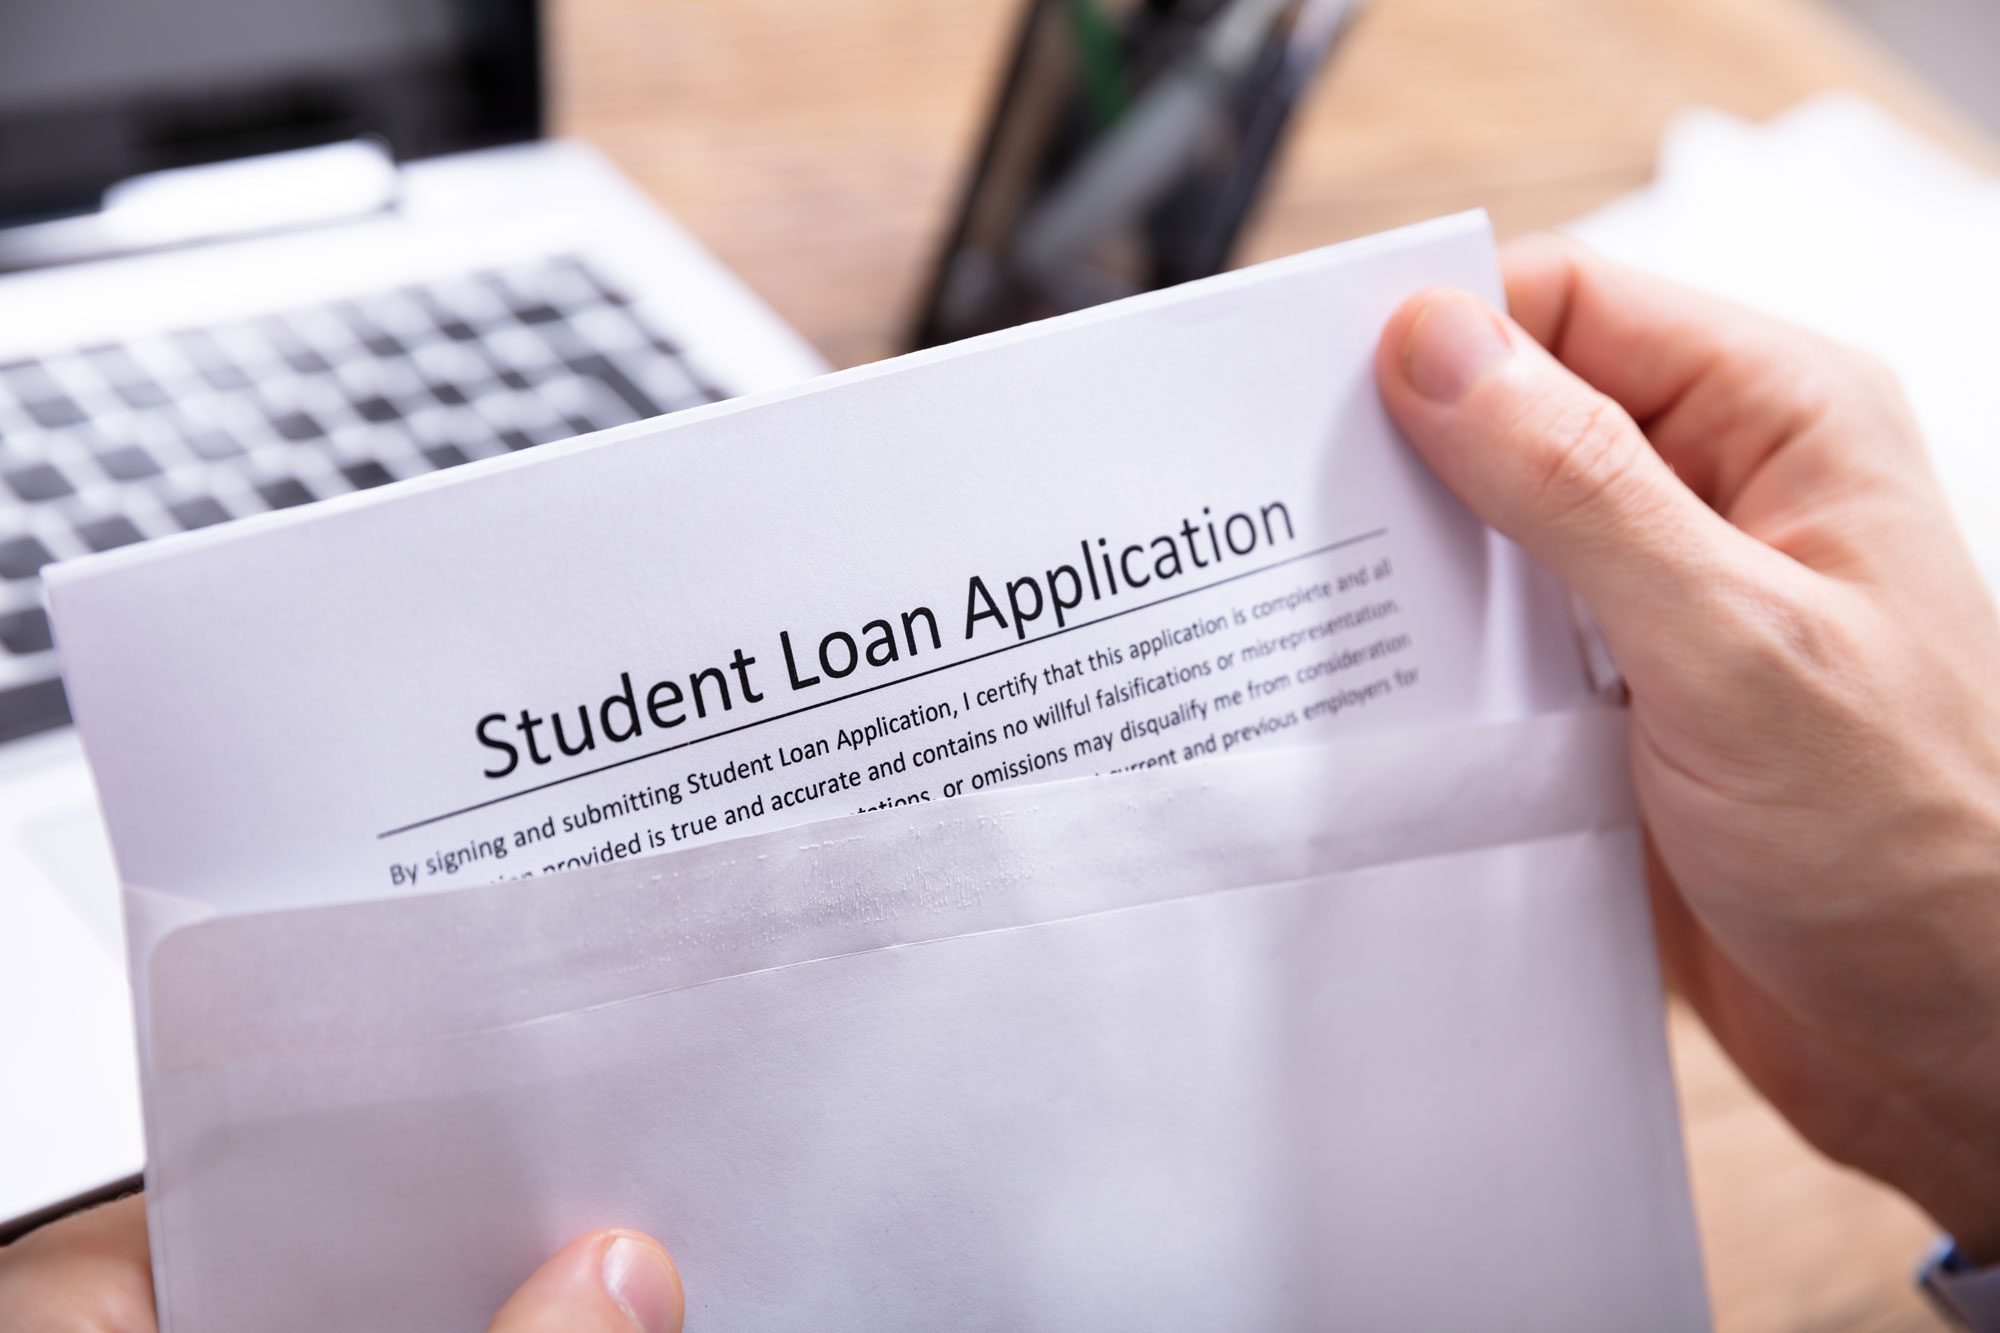 Student Loan Application - Swedish Institute - New York, NY